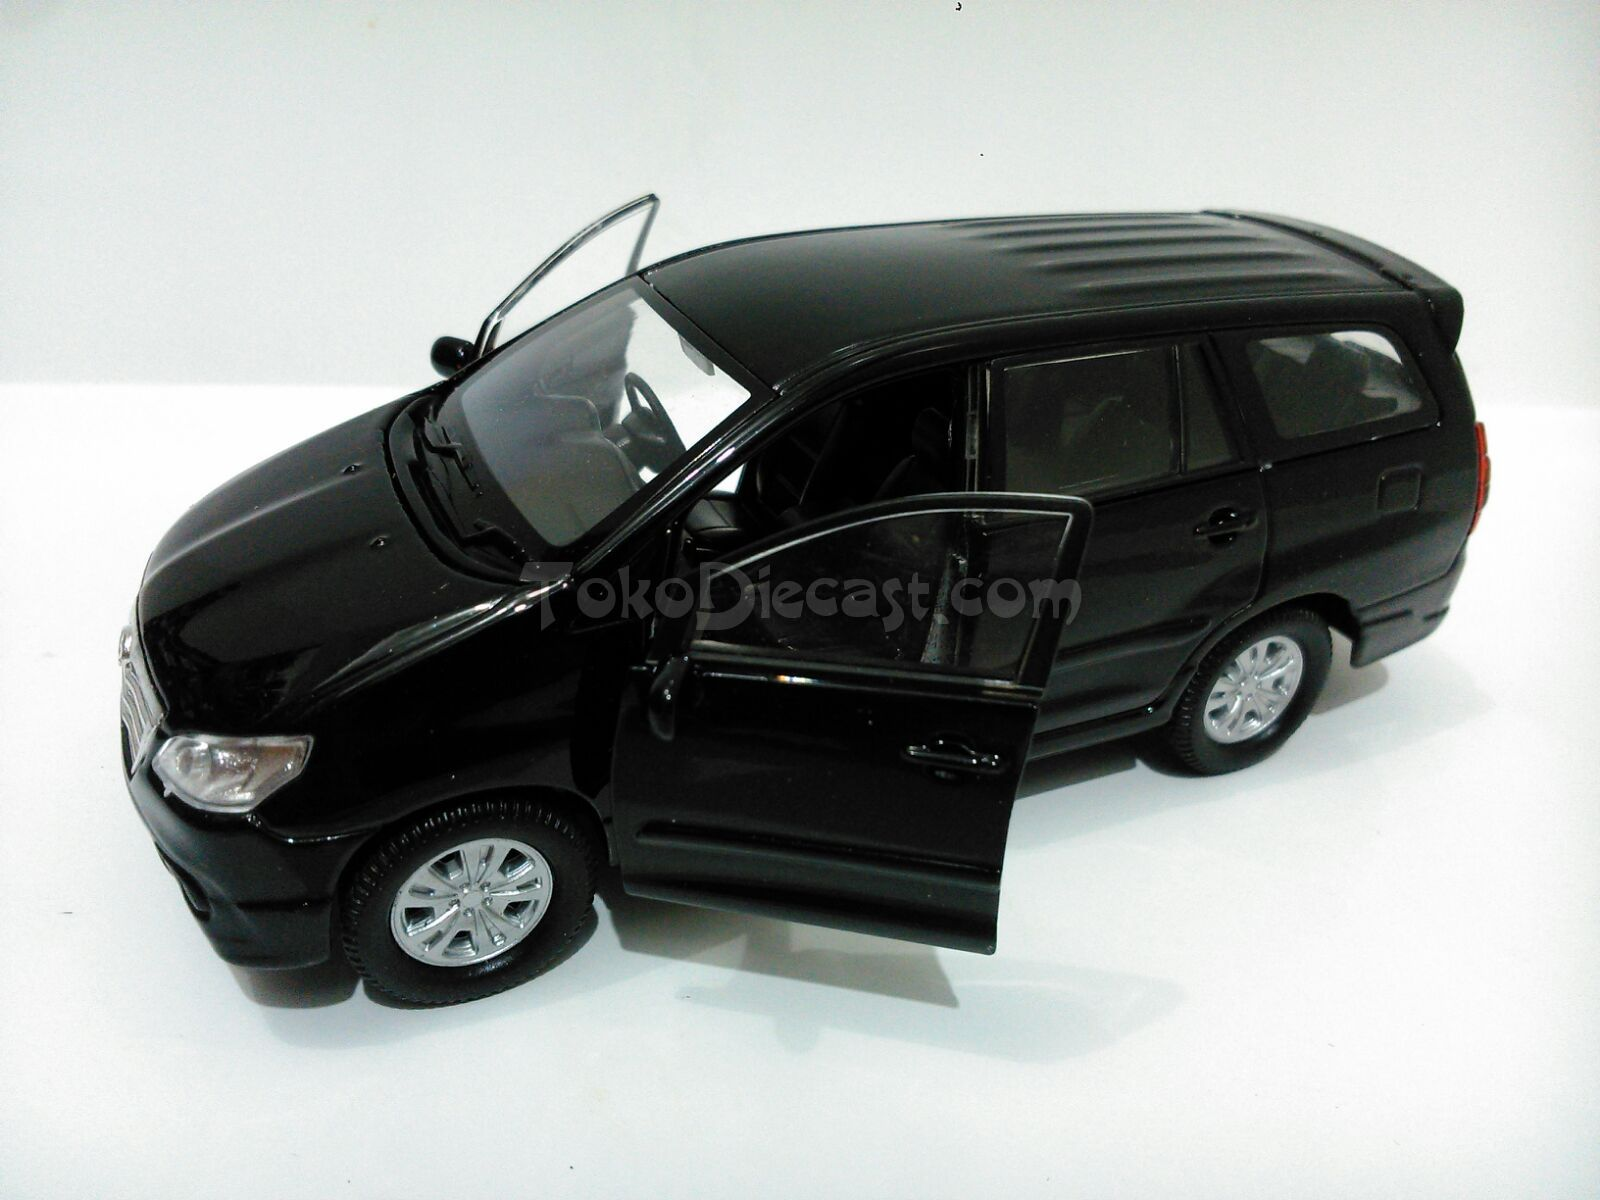 jual miniatur mobil toyota kijang innova hitam diecast welly 1 36 pojok diecast tokopedia. Black Bedroom Furniture Sets. Home Design Ideas